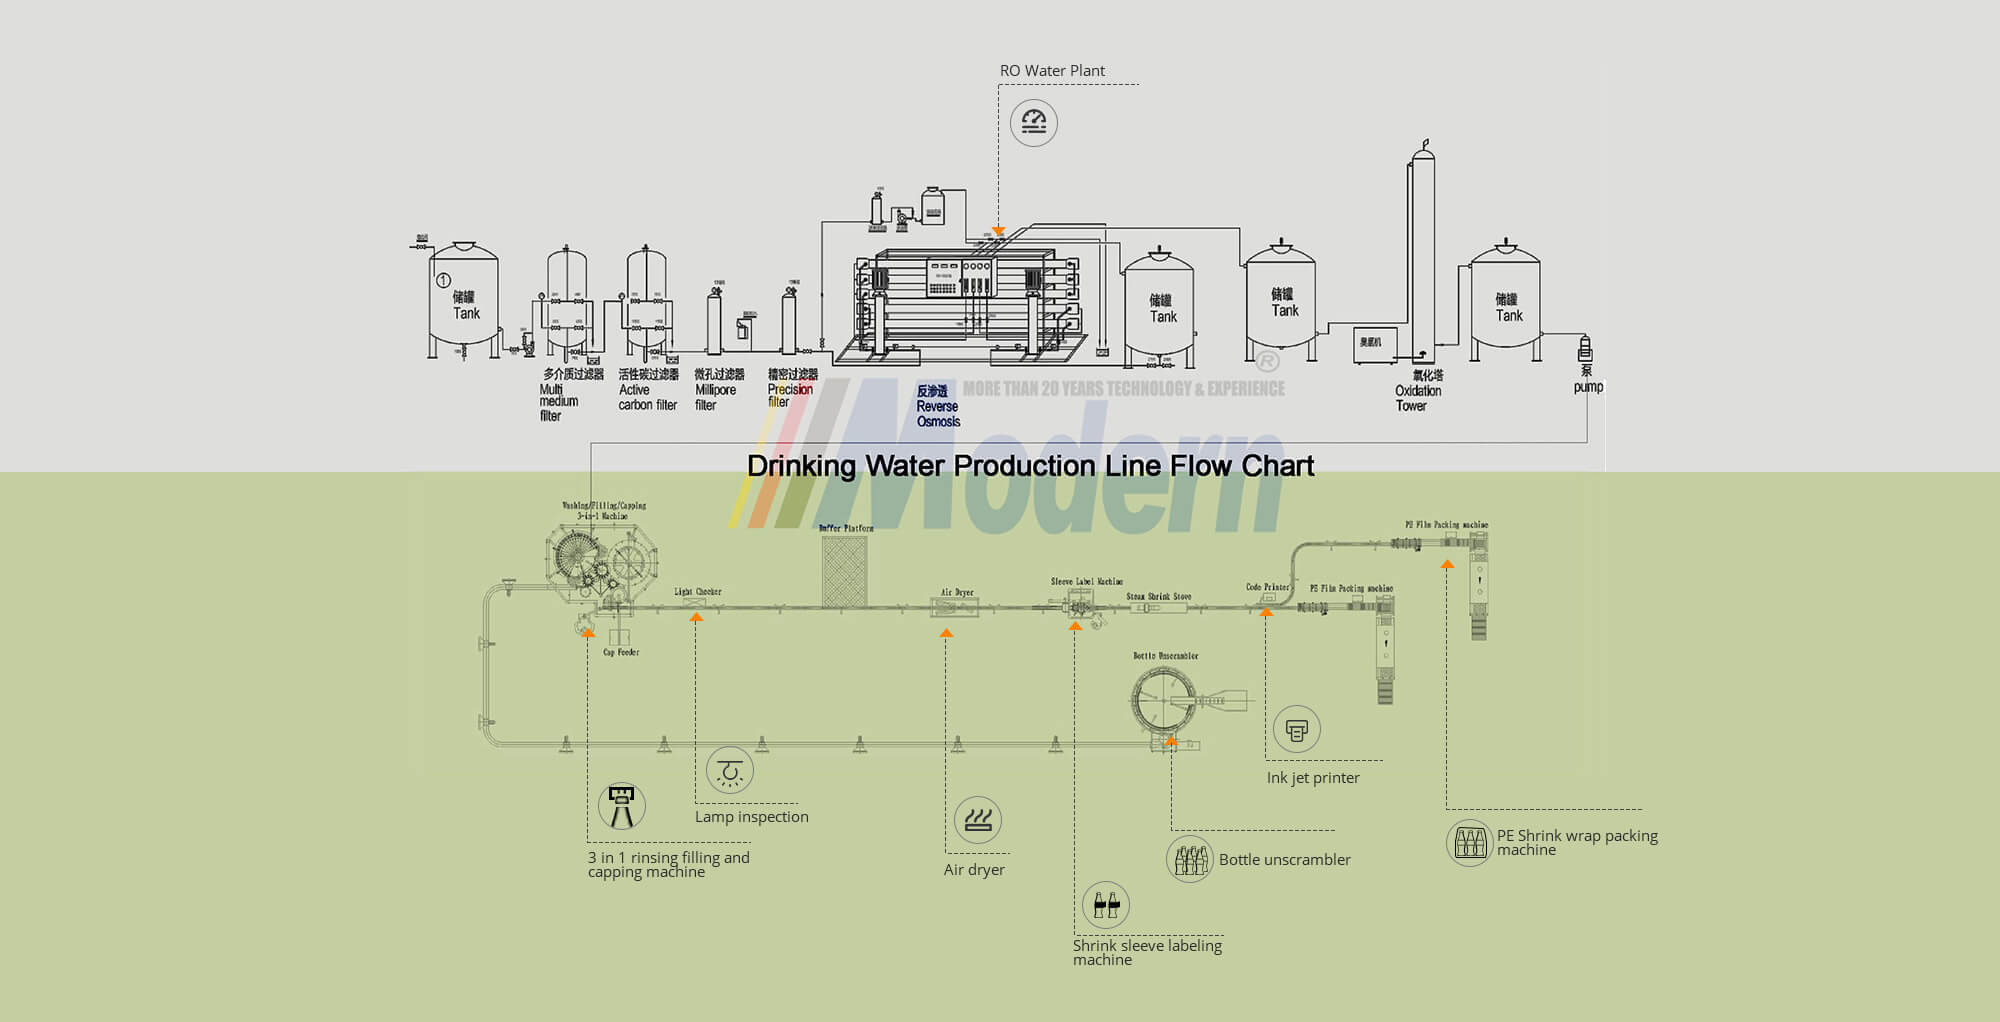 Drinking Water Production Line Flow Chart